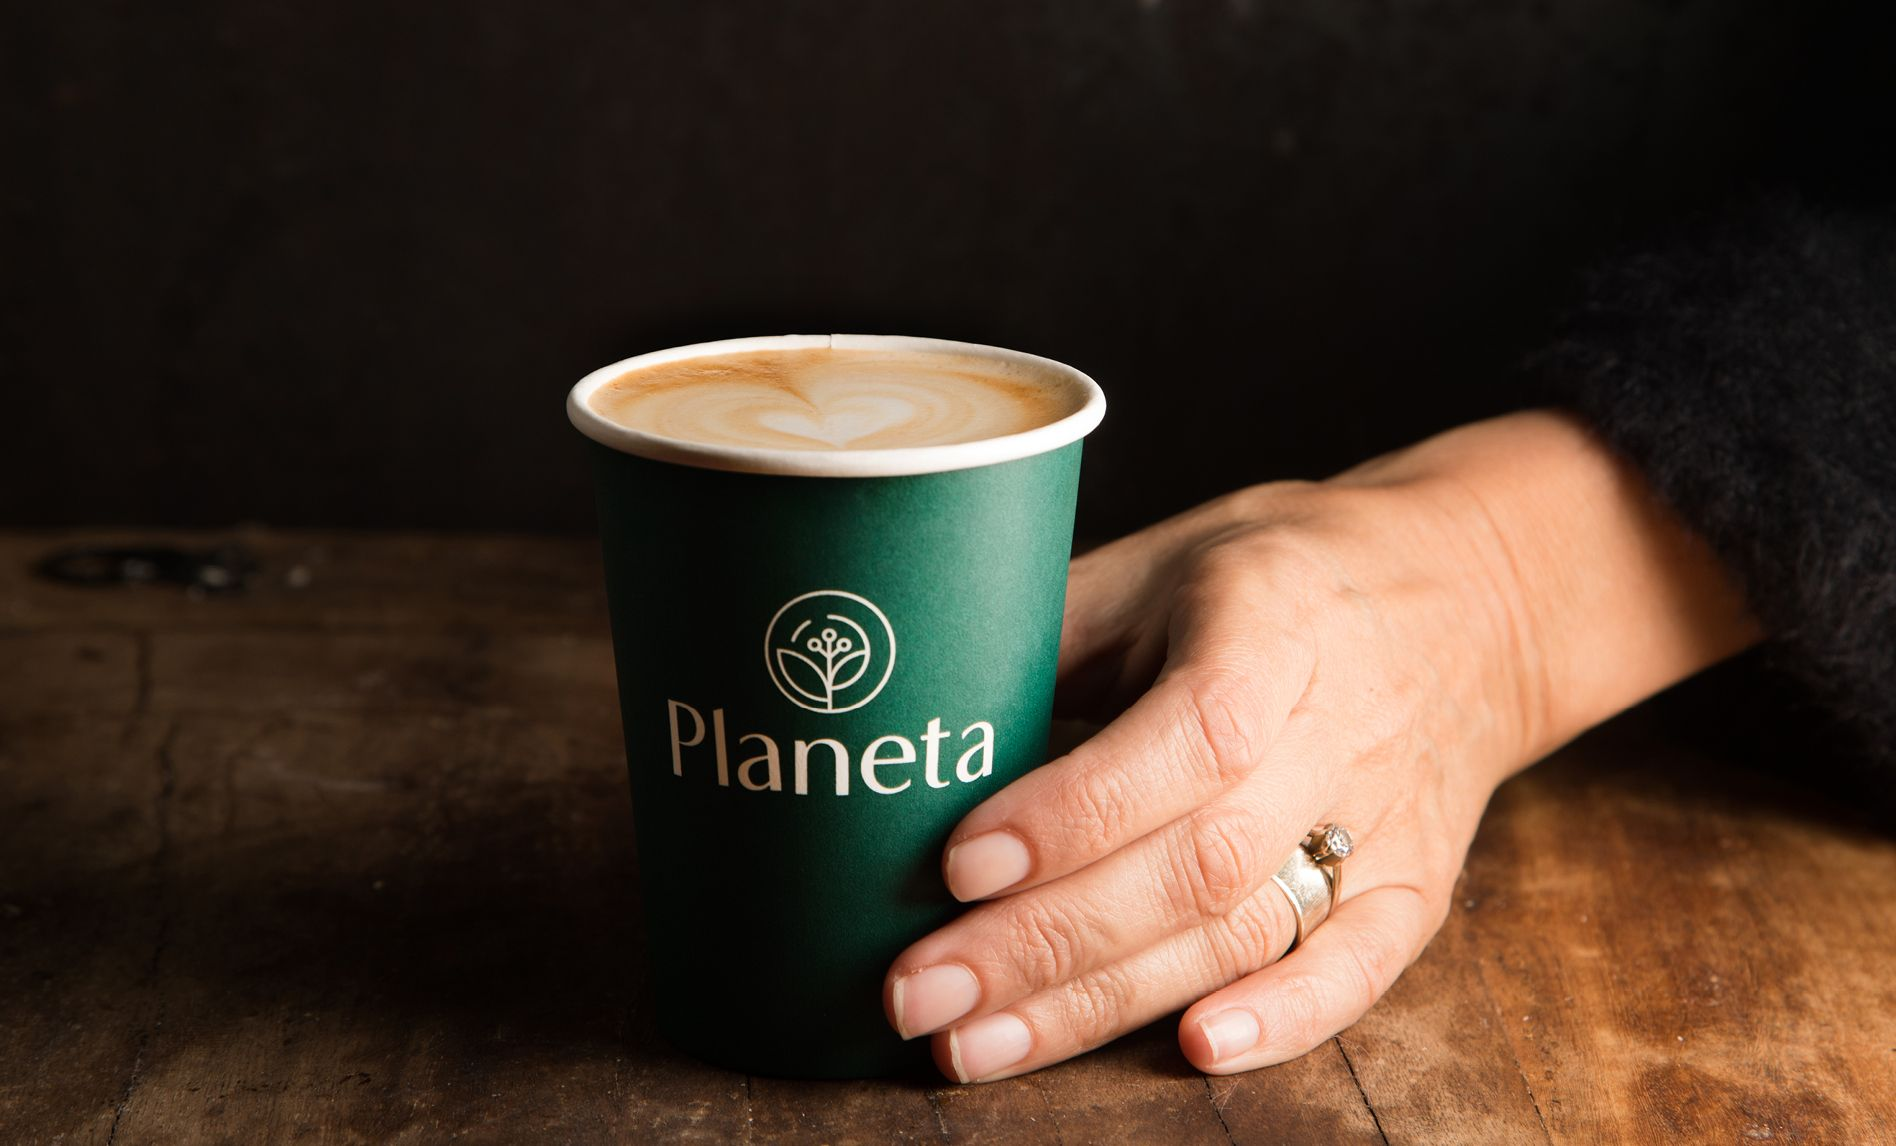 Hand holding a branded Planeta coffee cup